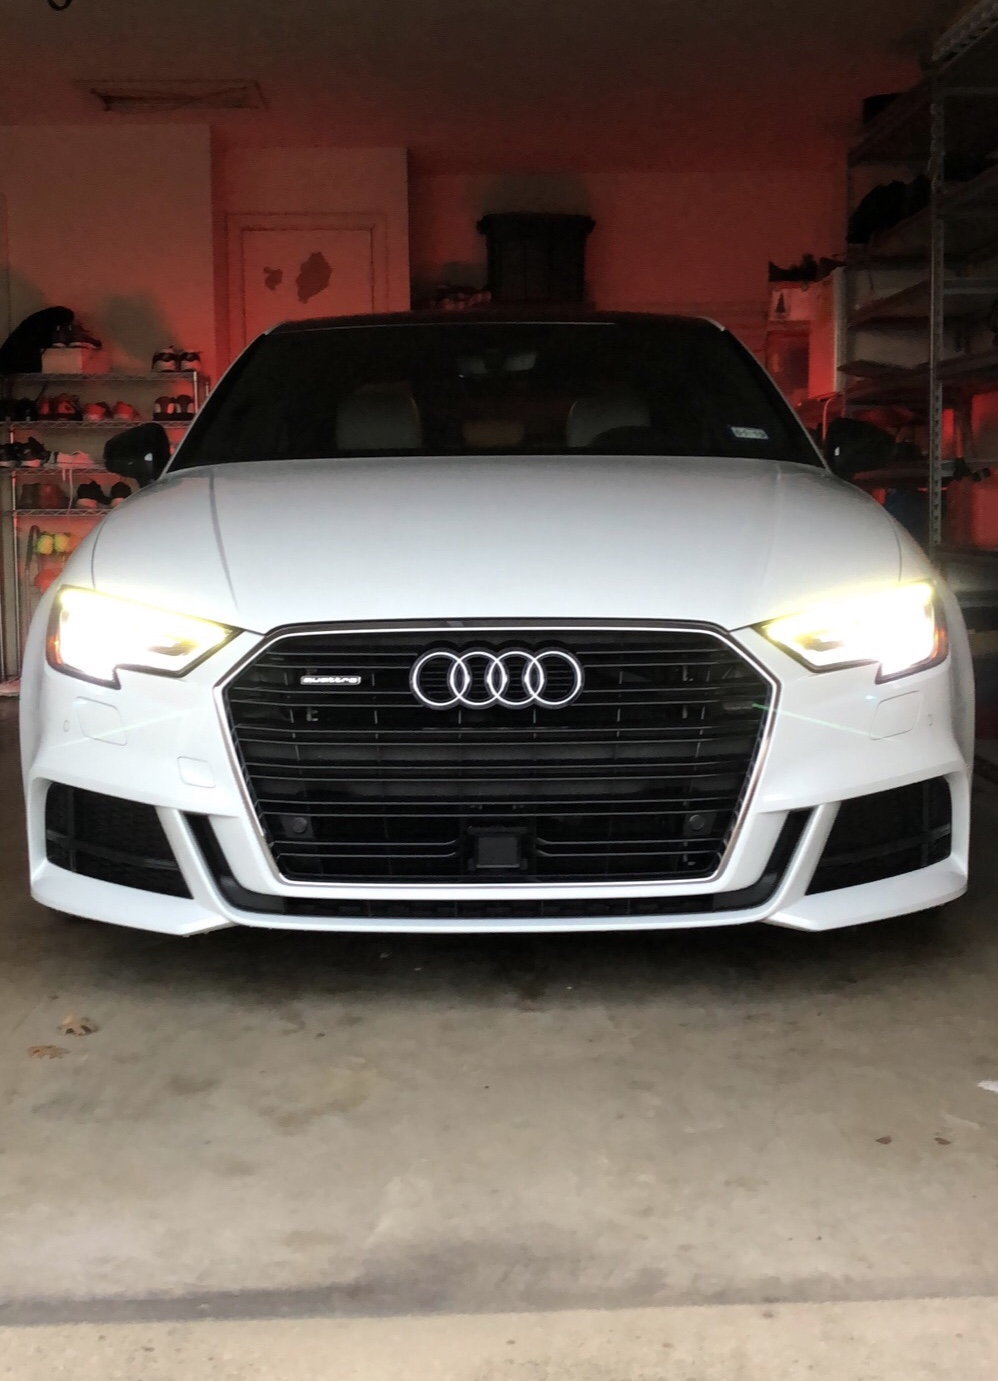 Audi A3 FS in Dallas, Texas 2017 Audi A3 2.0 Quattro Premium Plus - AudiWorld Forums